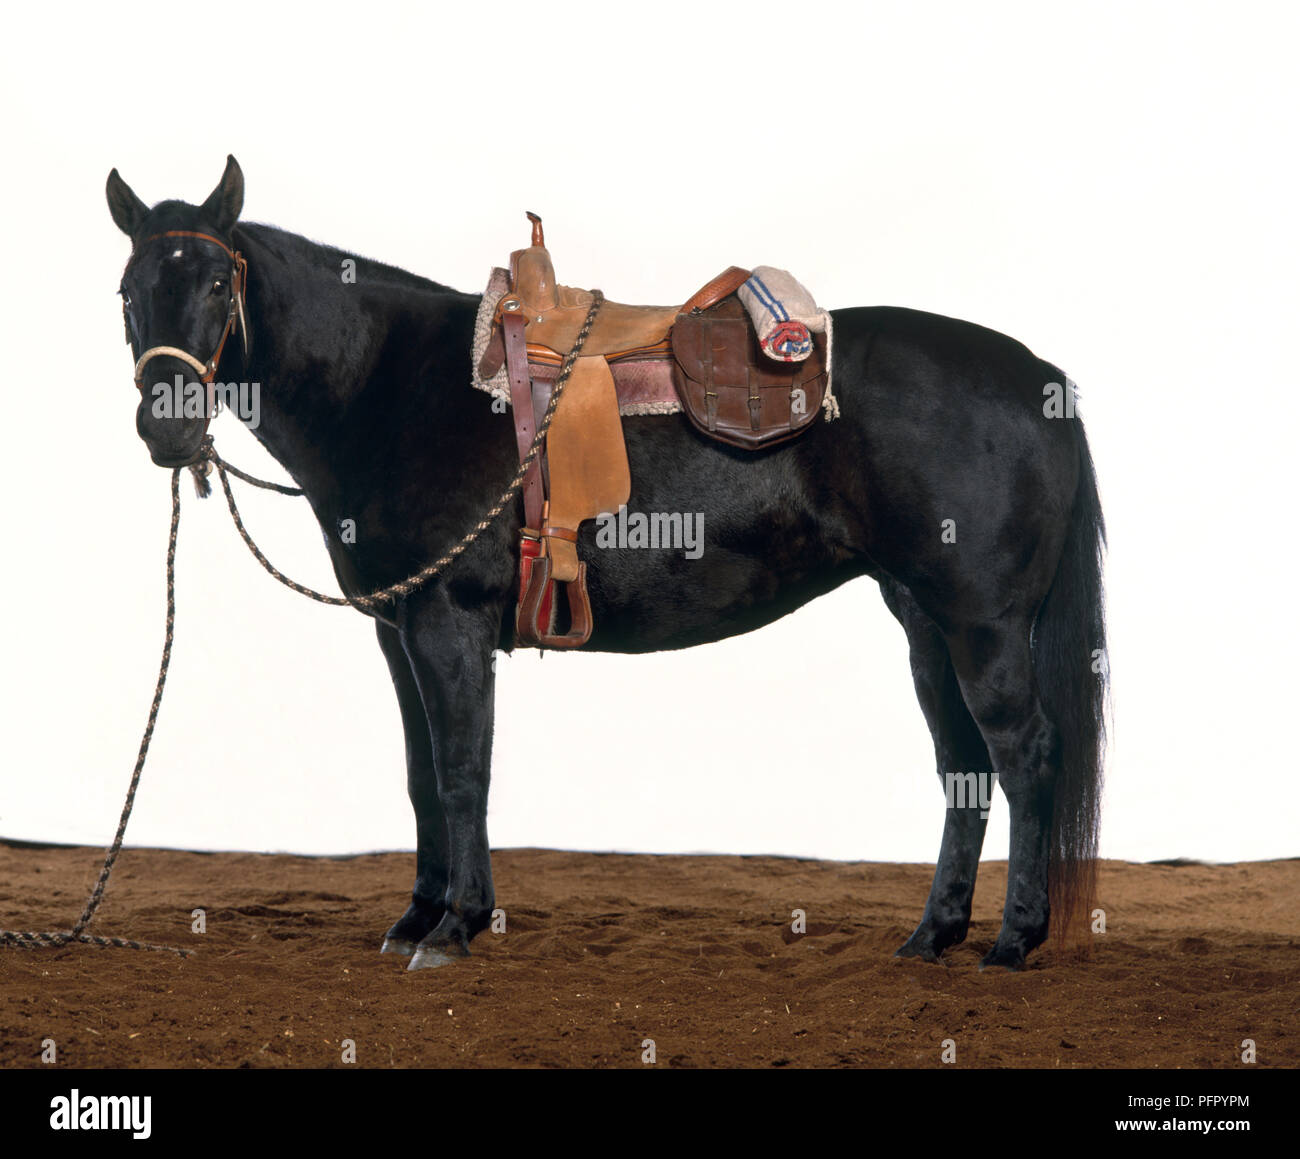 Black Horse With Western Saddle On Stock Photo Alamy